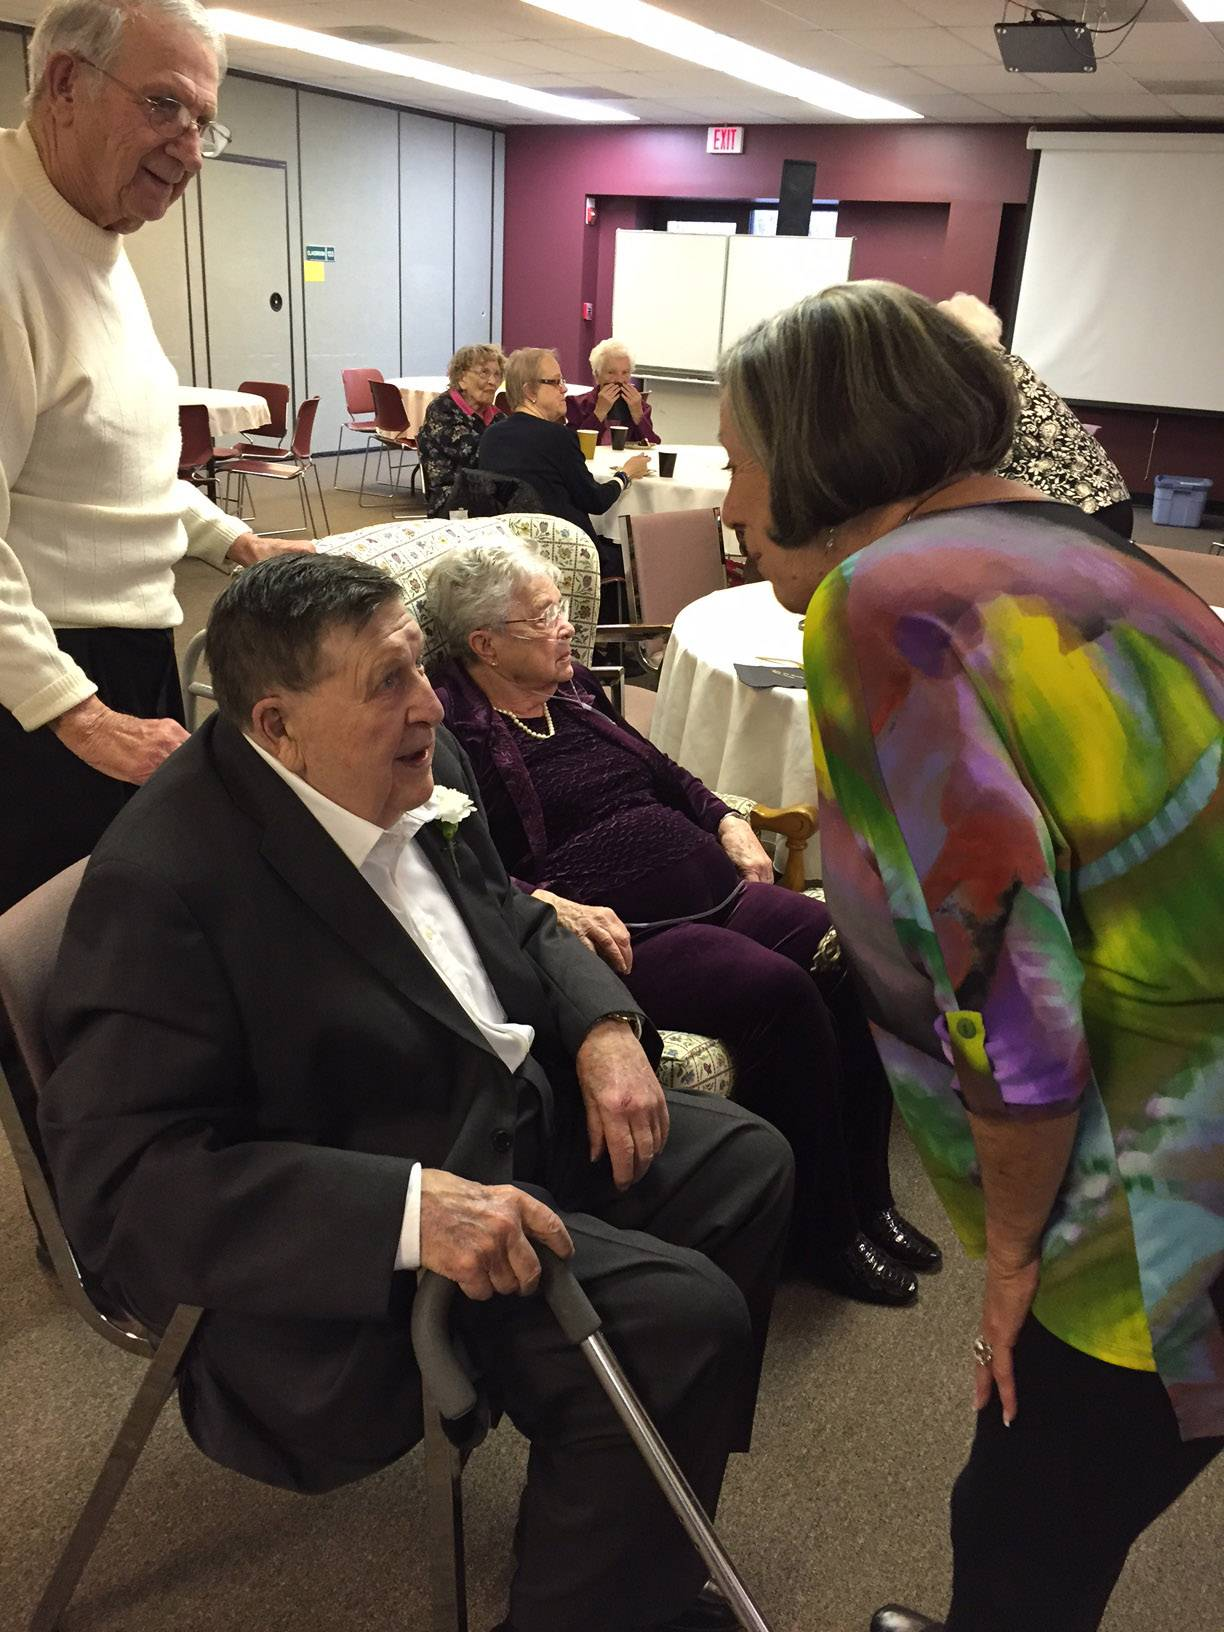 Melvin Peterson, seated, chats with visitors at his recent 95th birthday party at Bethlehem Lutheran Church in St. Charles. His wife, Ruth, is seated next to him.